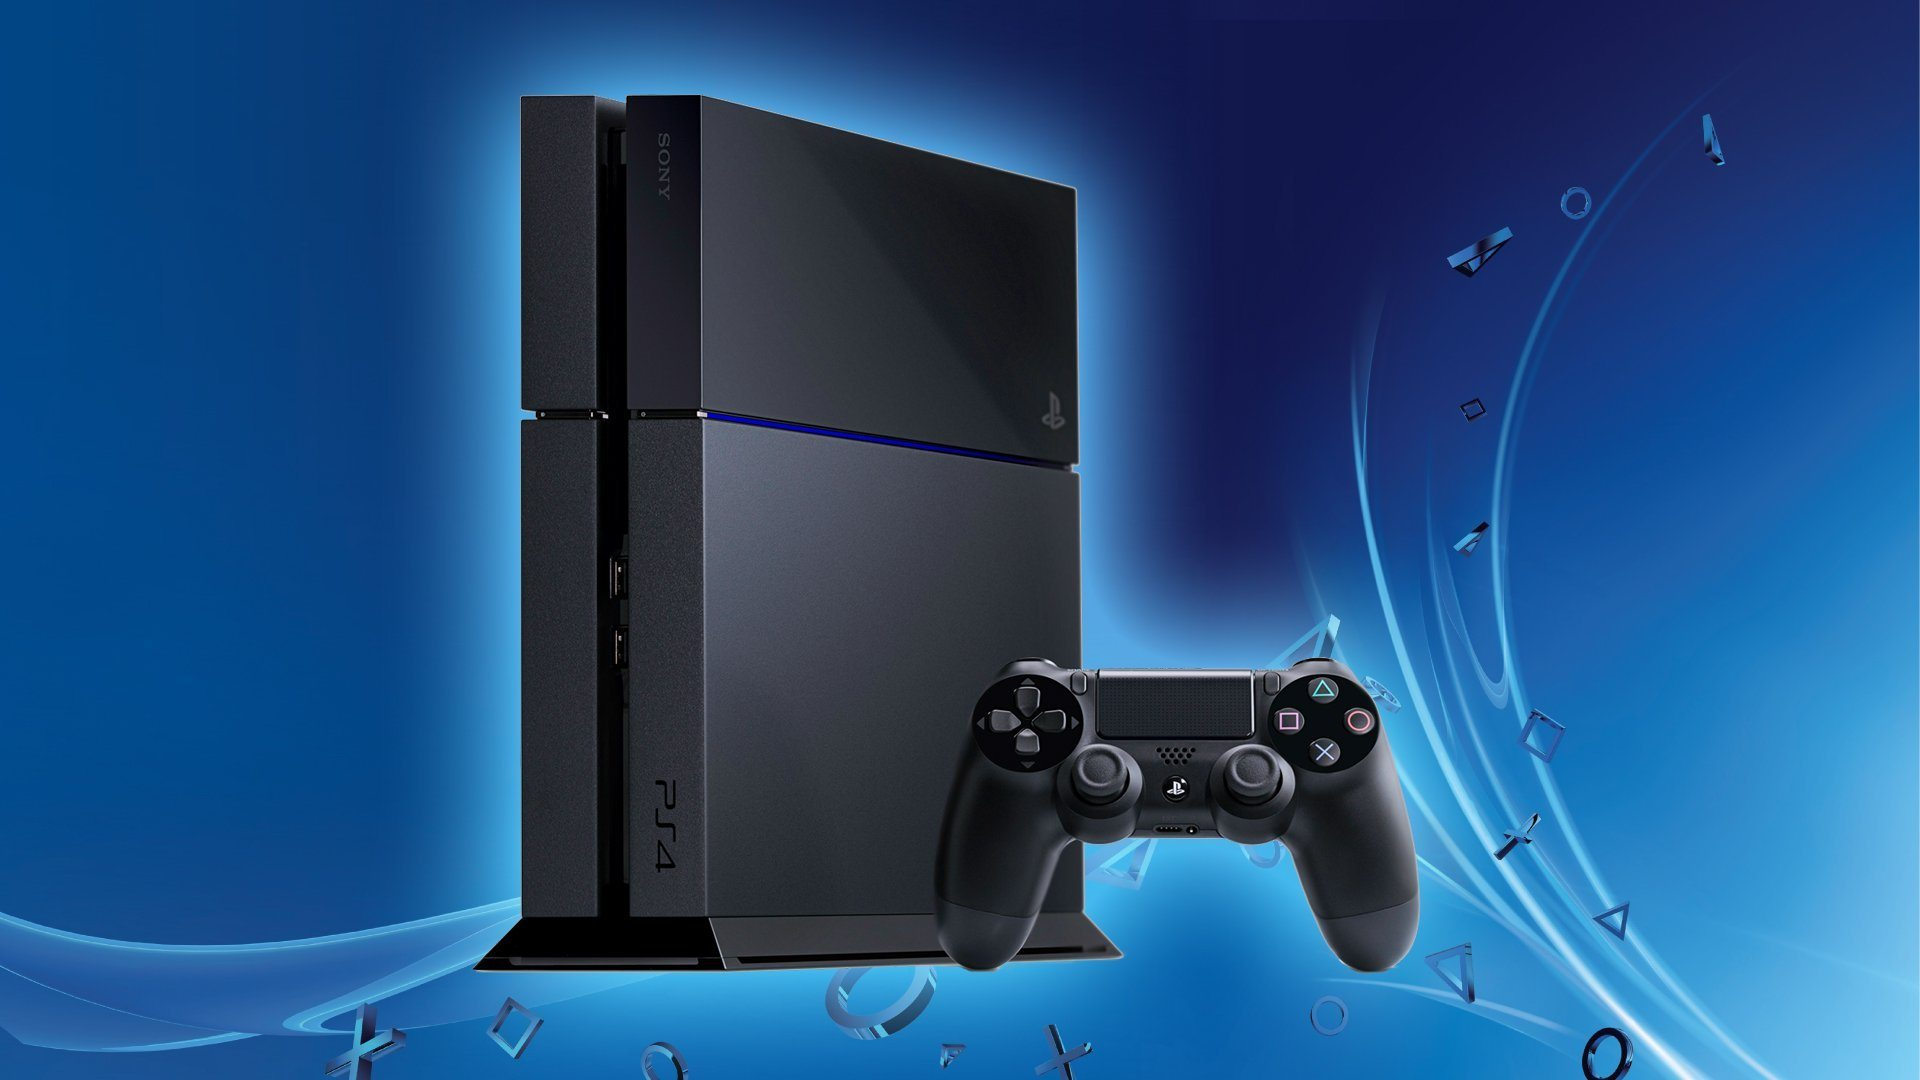 ps4_playstation_4_console_wallpaper